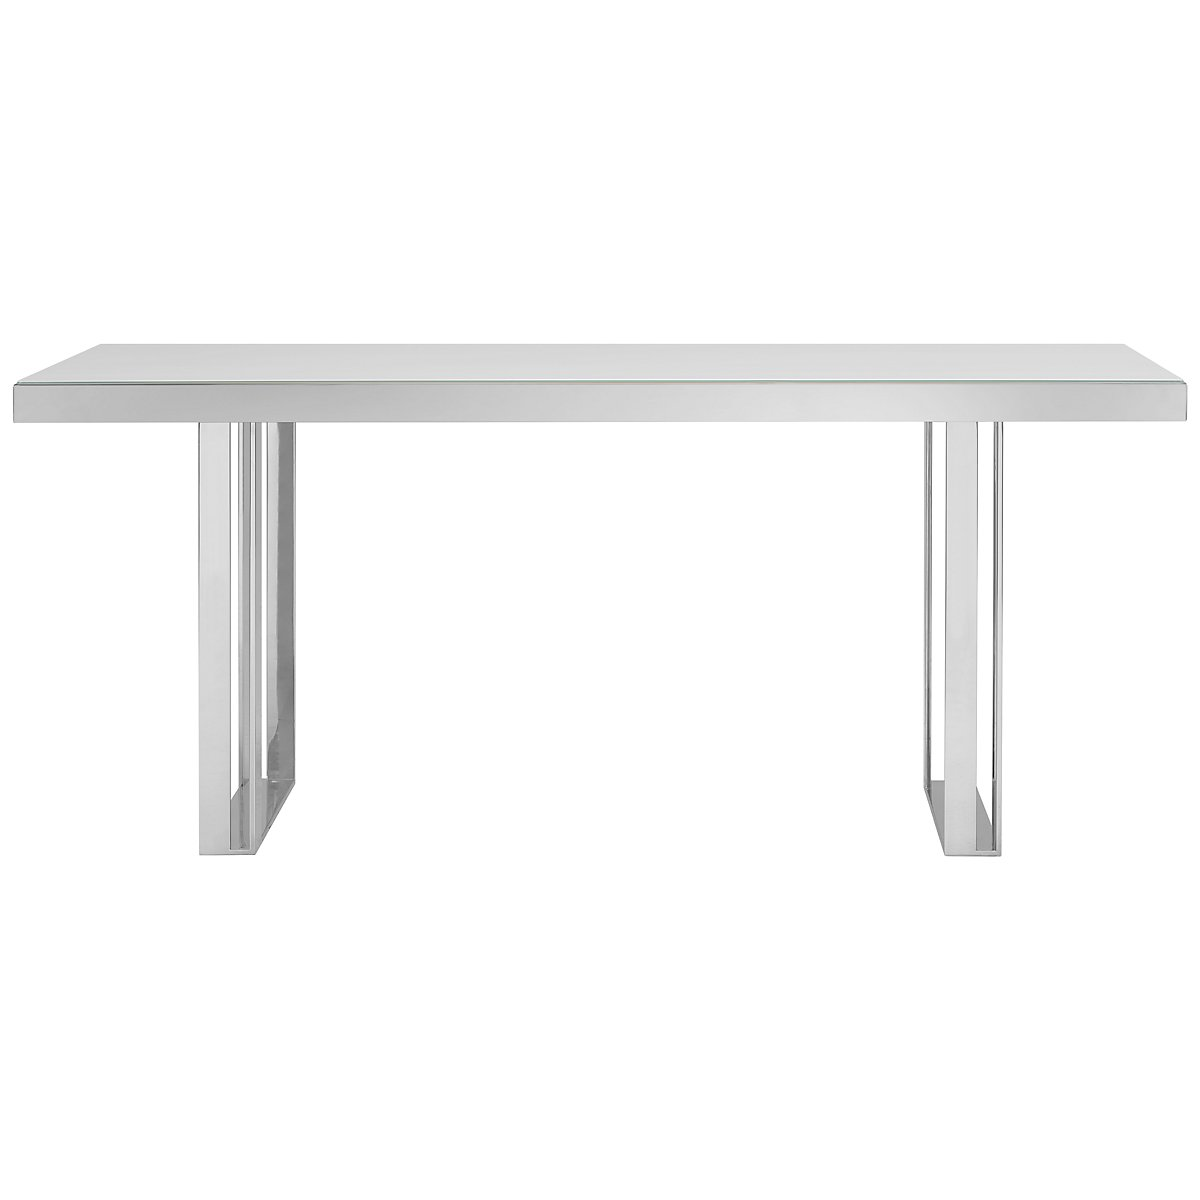 Harley White Glass Rectangular Table